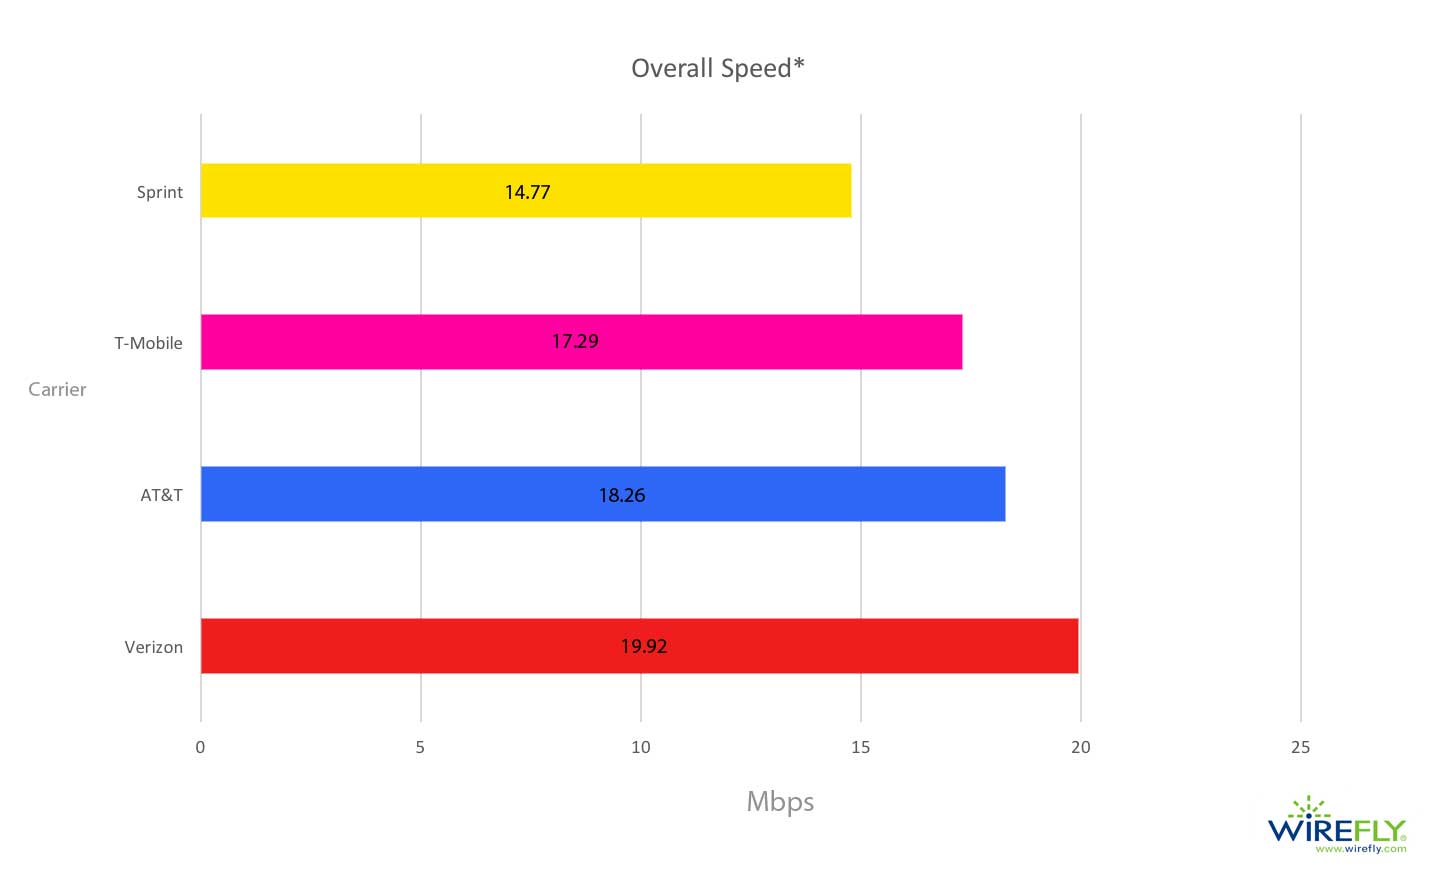 Overall Mobile Carrier Internet Speed in the United States (Q4 2017 - Q1 2018)